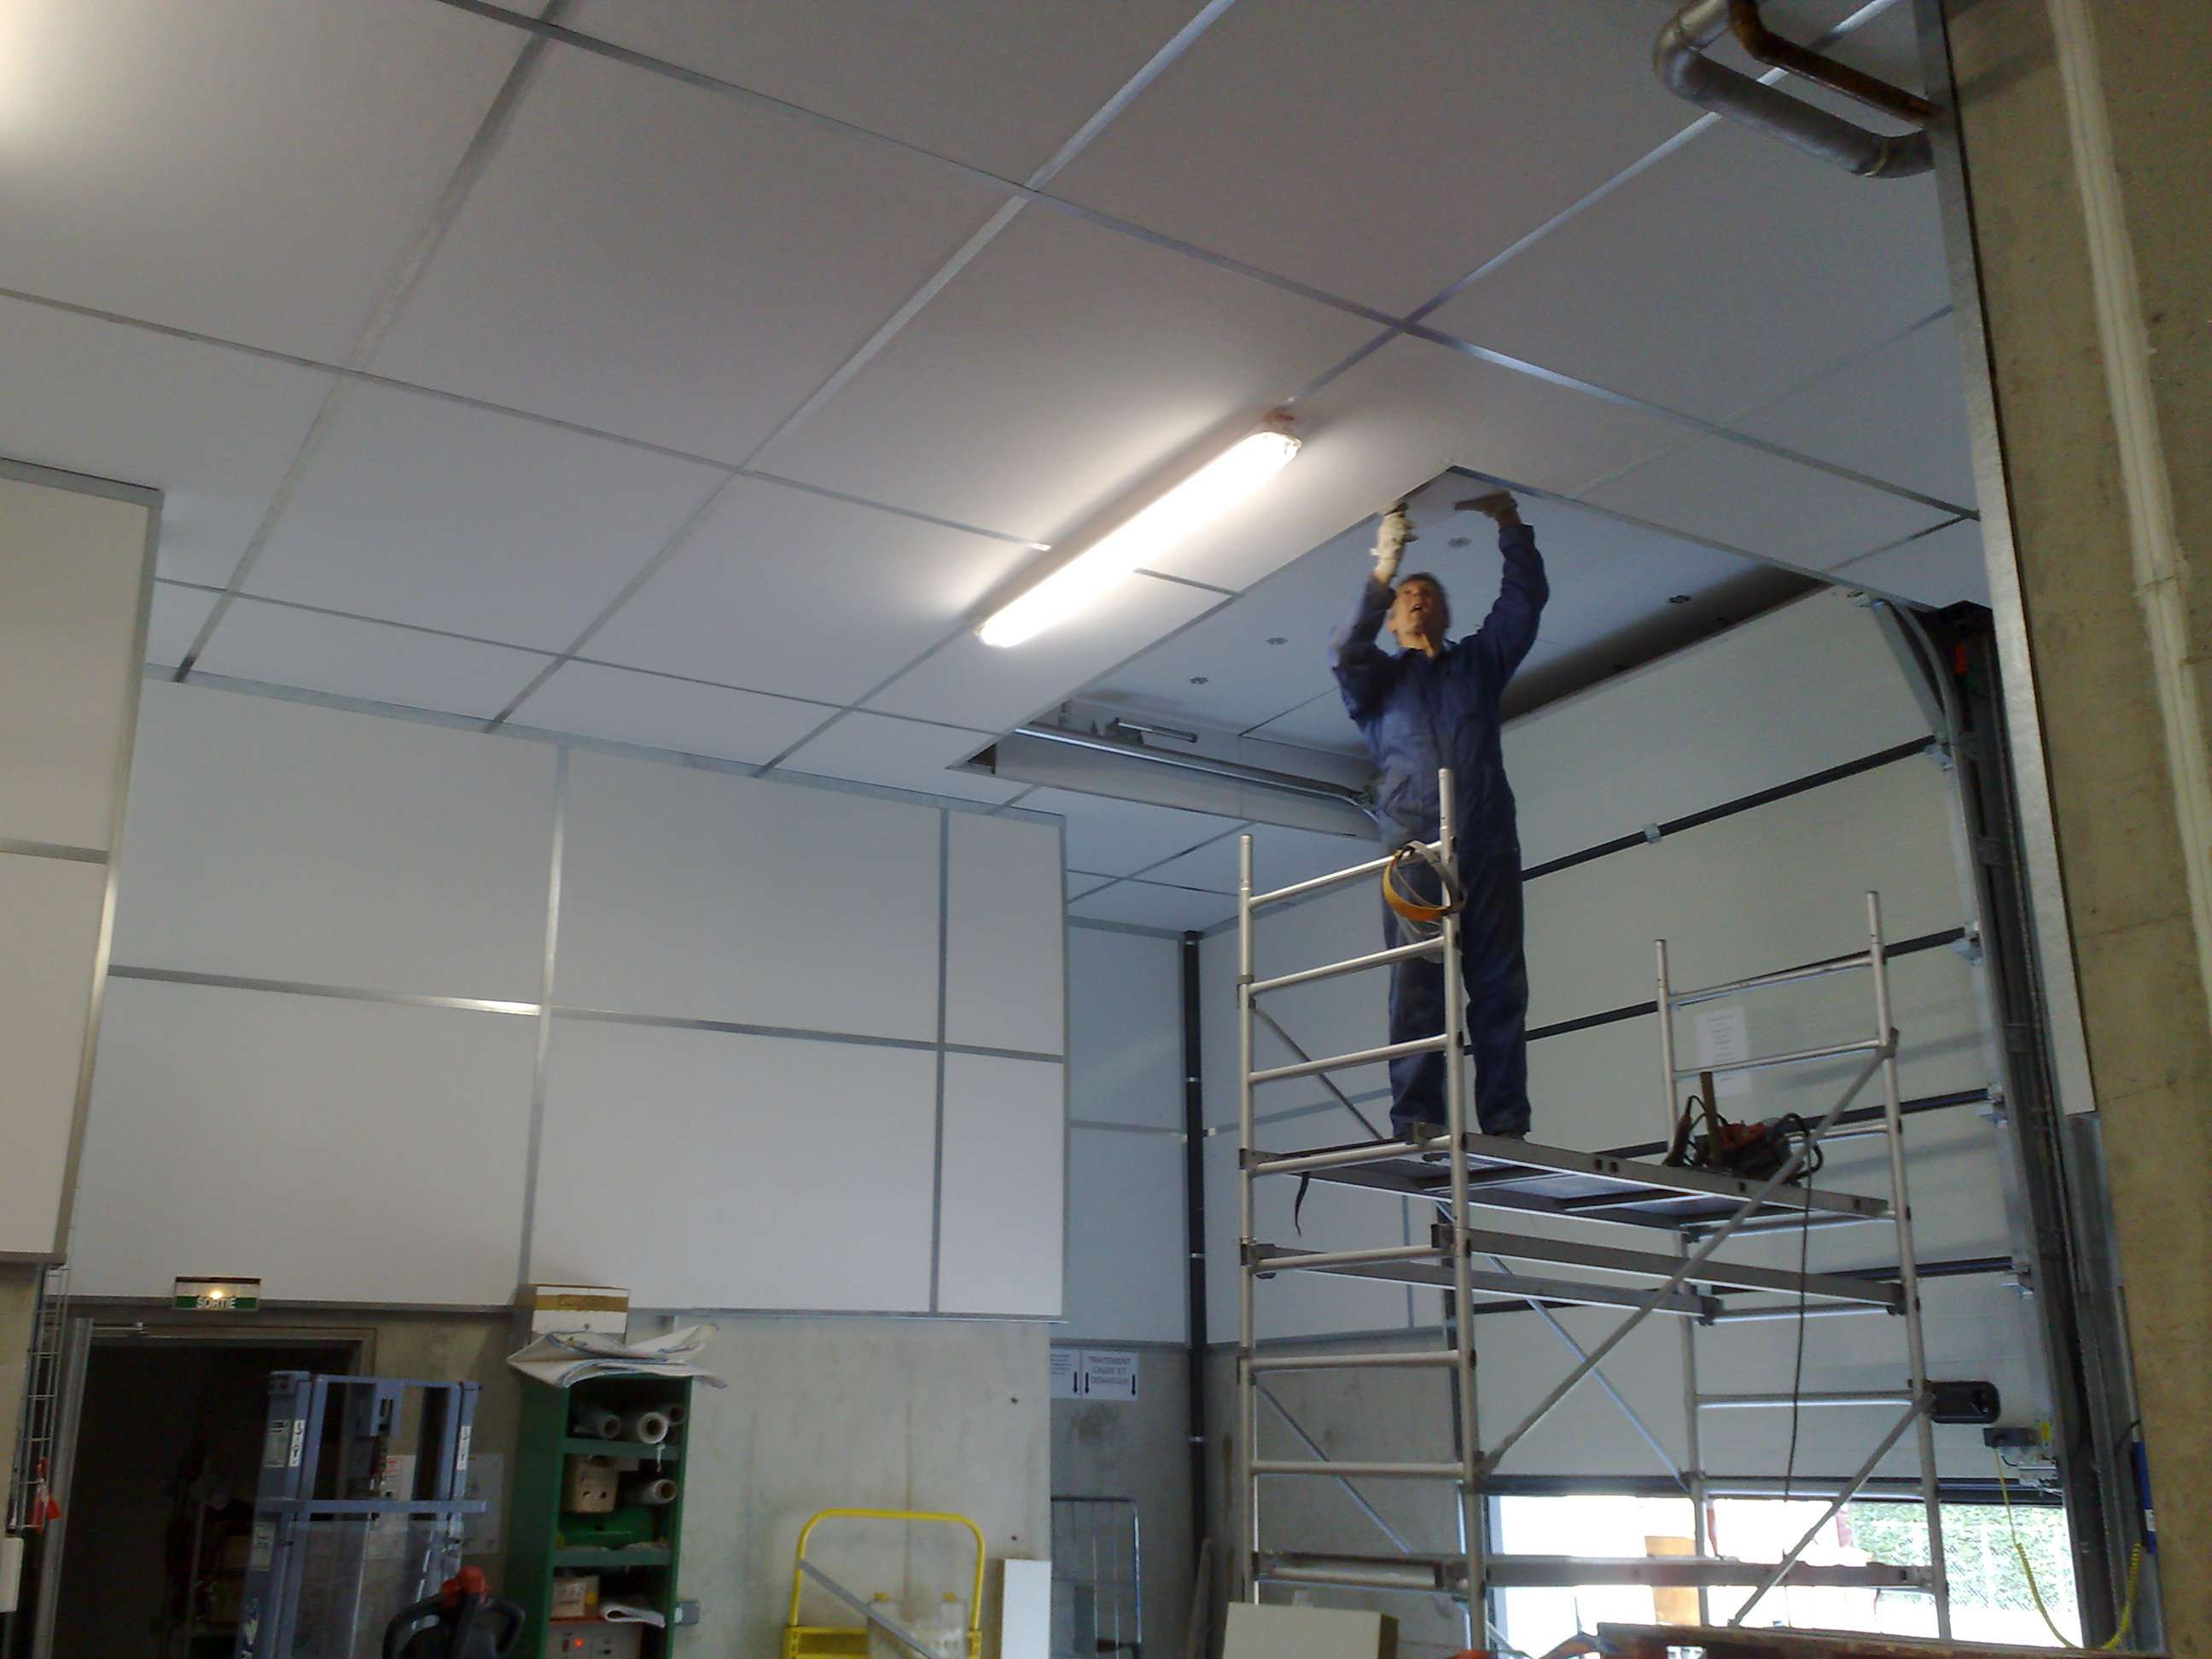 Traitement acoustique de magasin cometac installation for Faux plafond acoustique